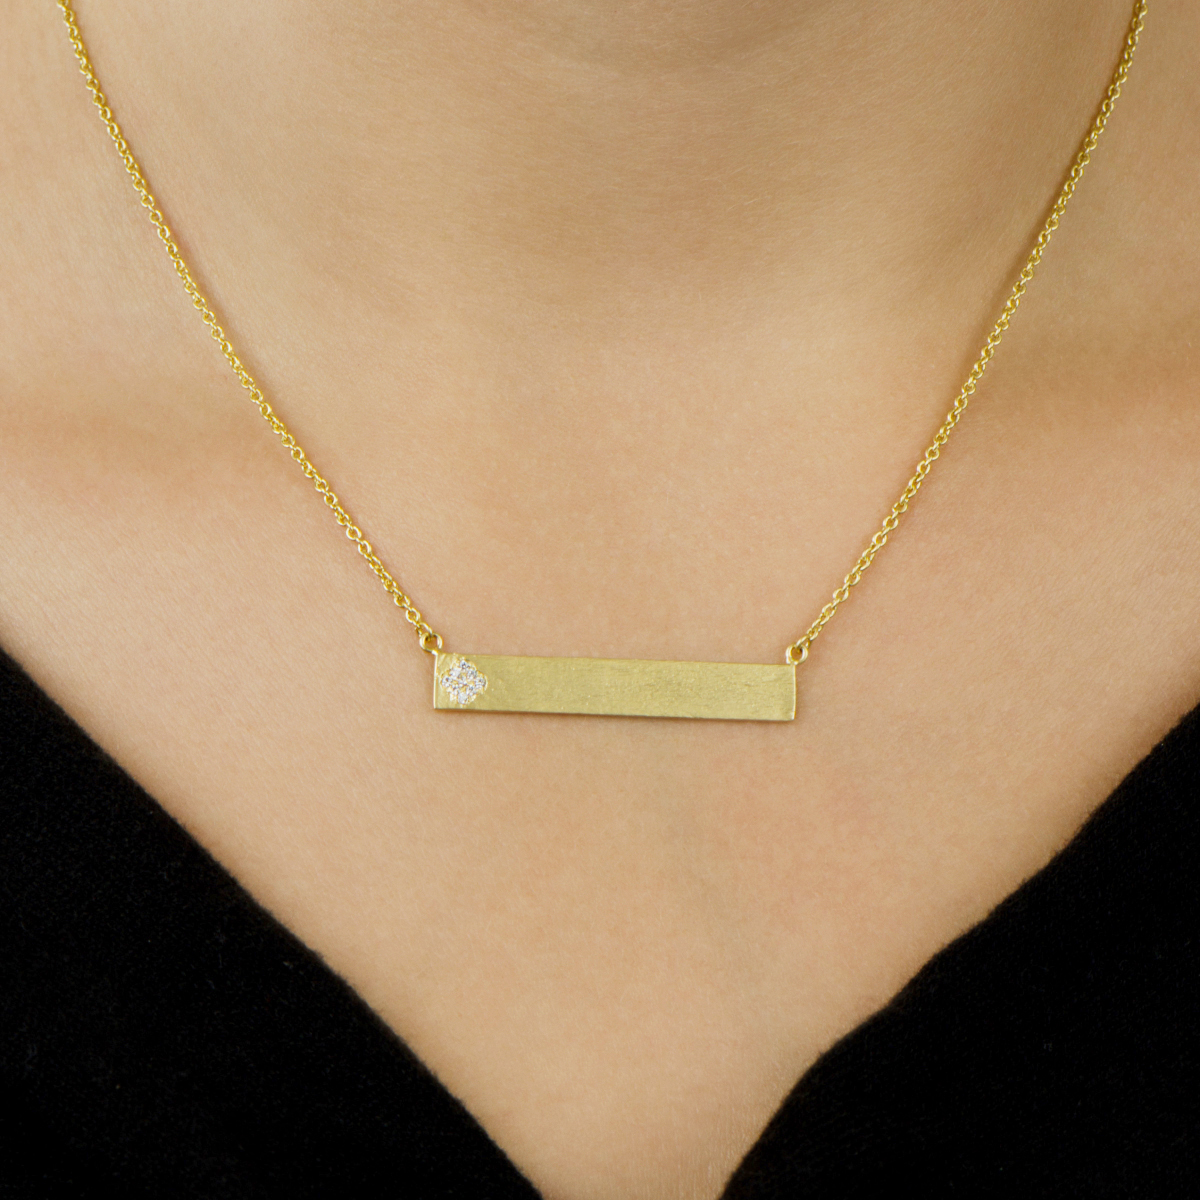 necklace gold bar